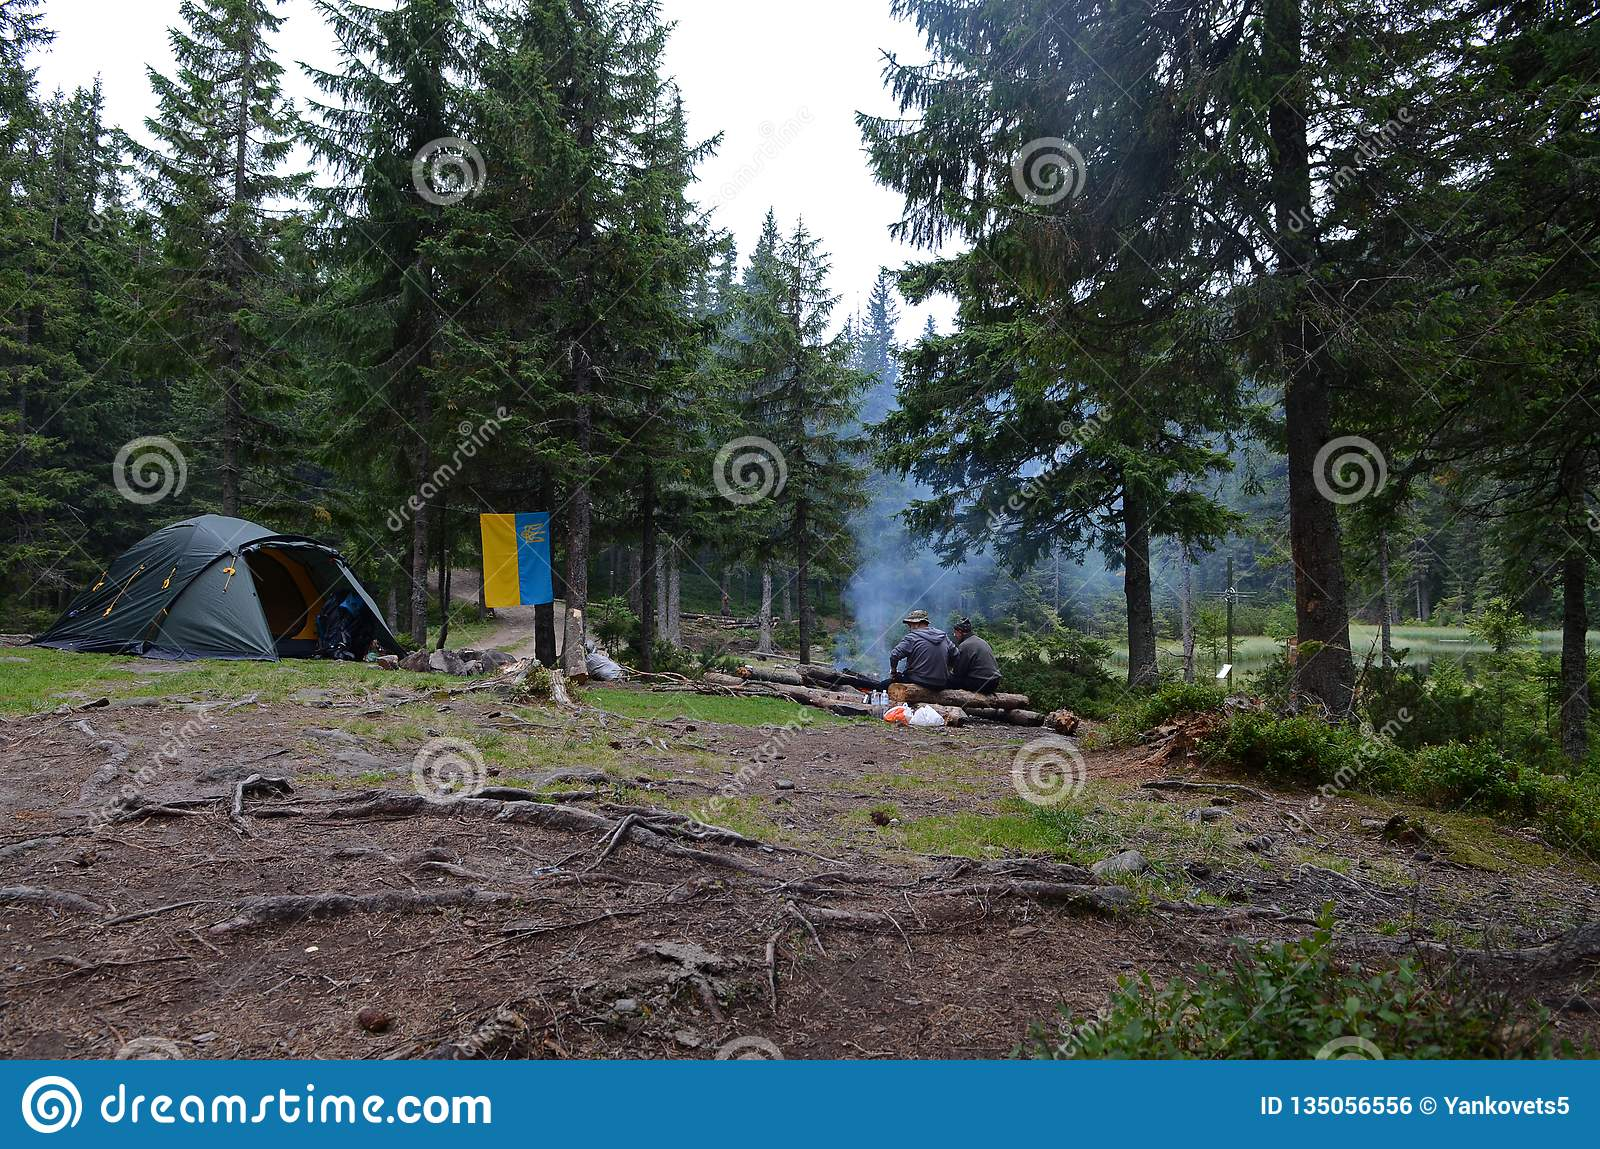 Camping in the mountains on the shore of a mountain lake